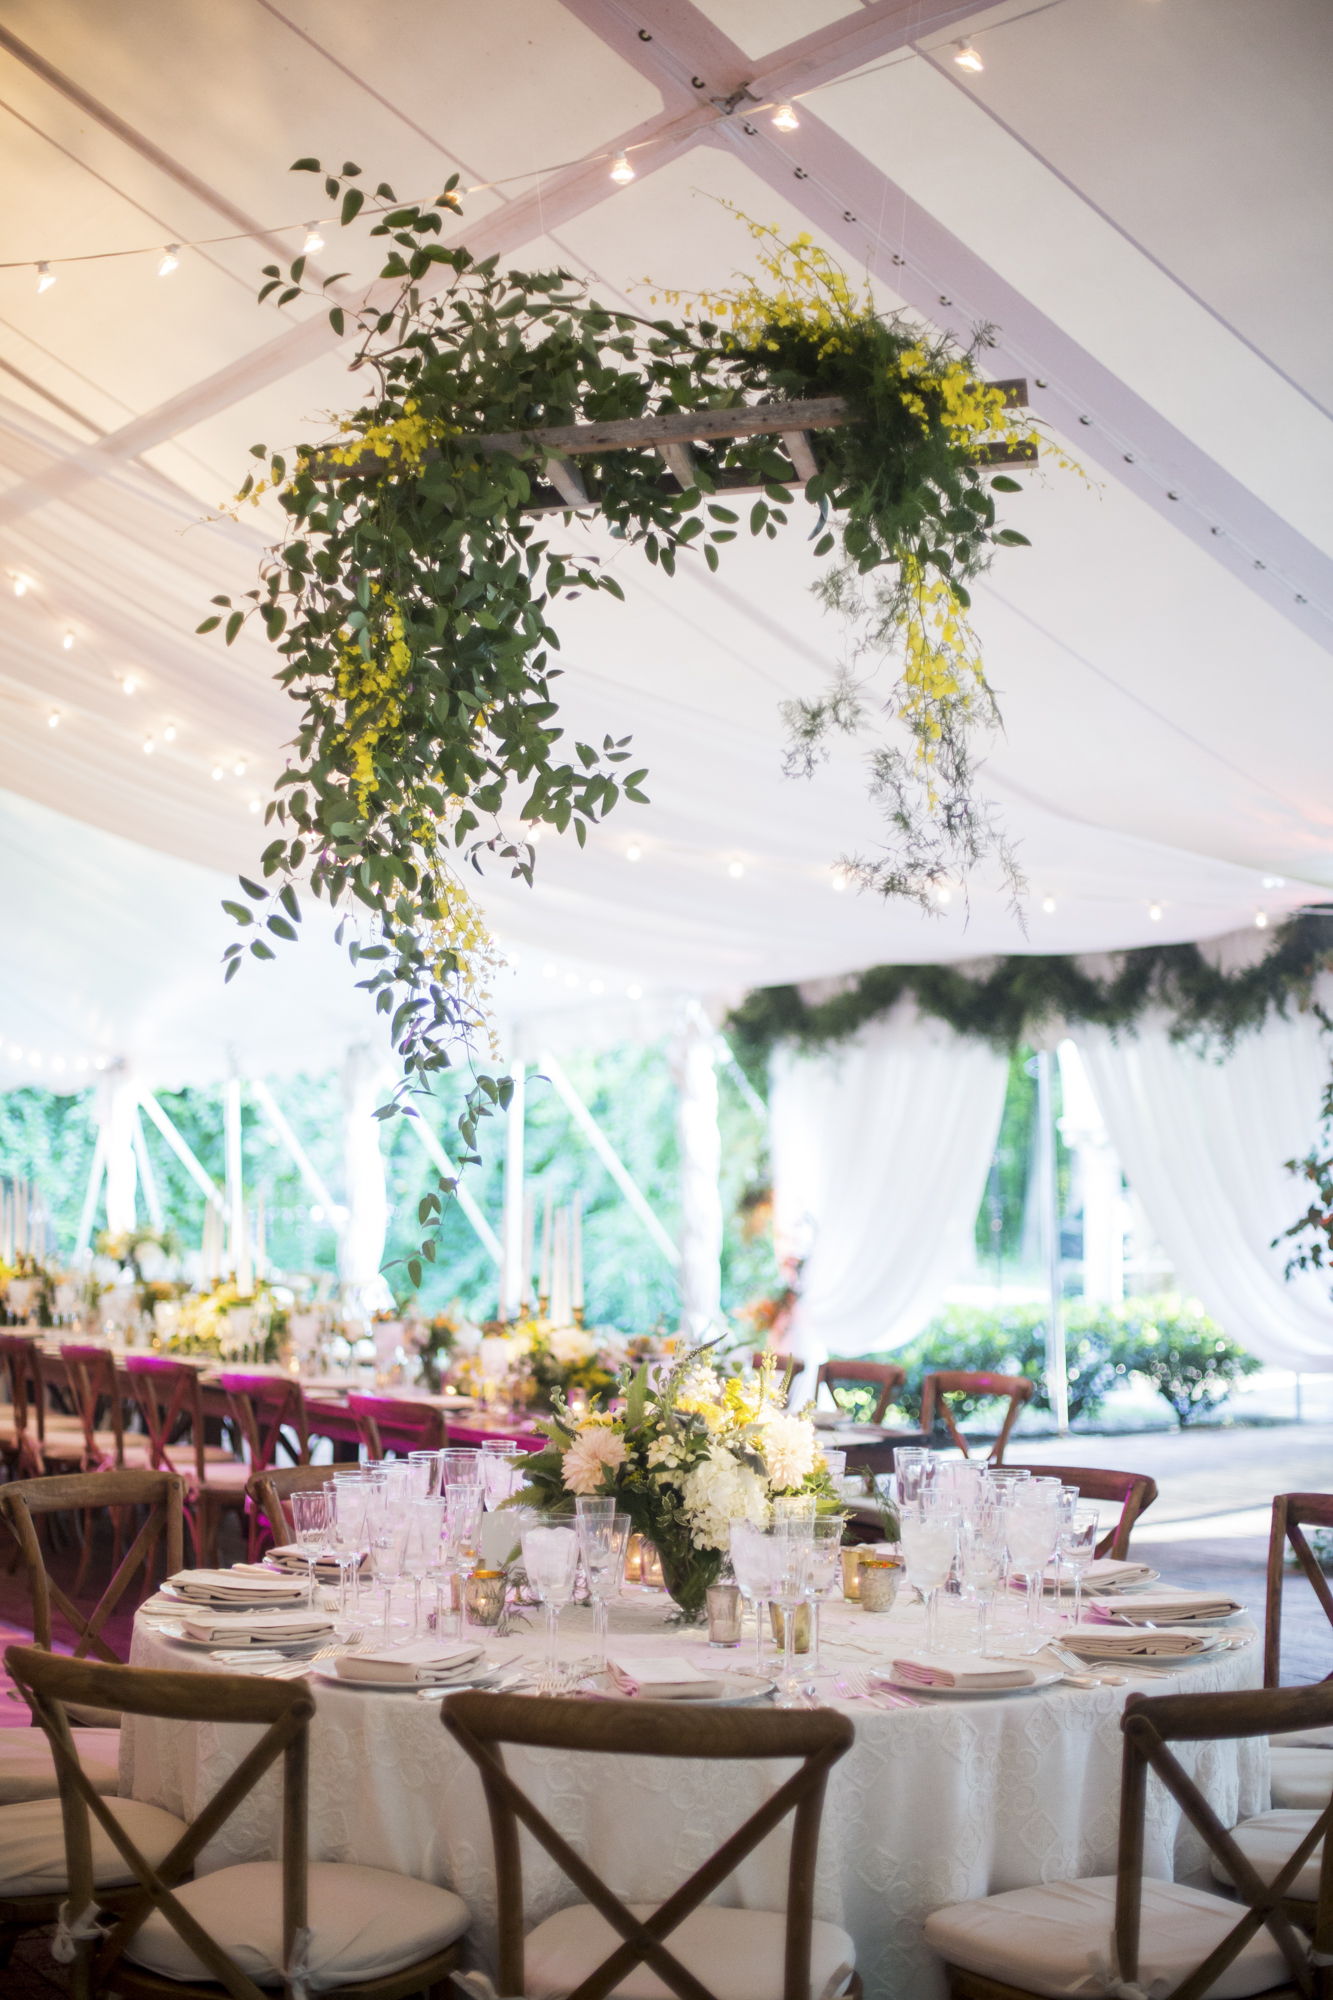 Hanging smilax and oncidium orchids in tent ceiling